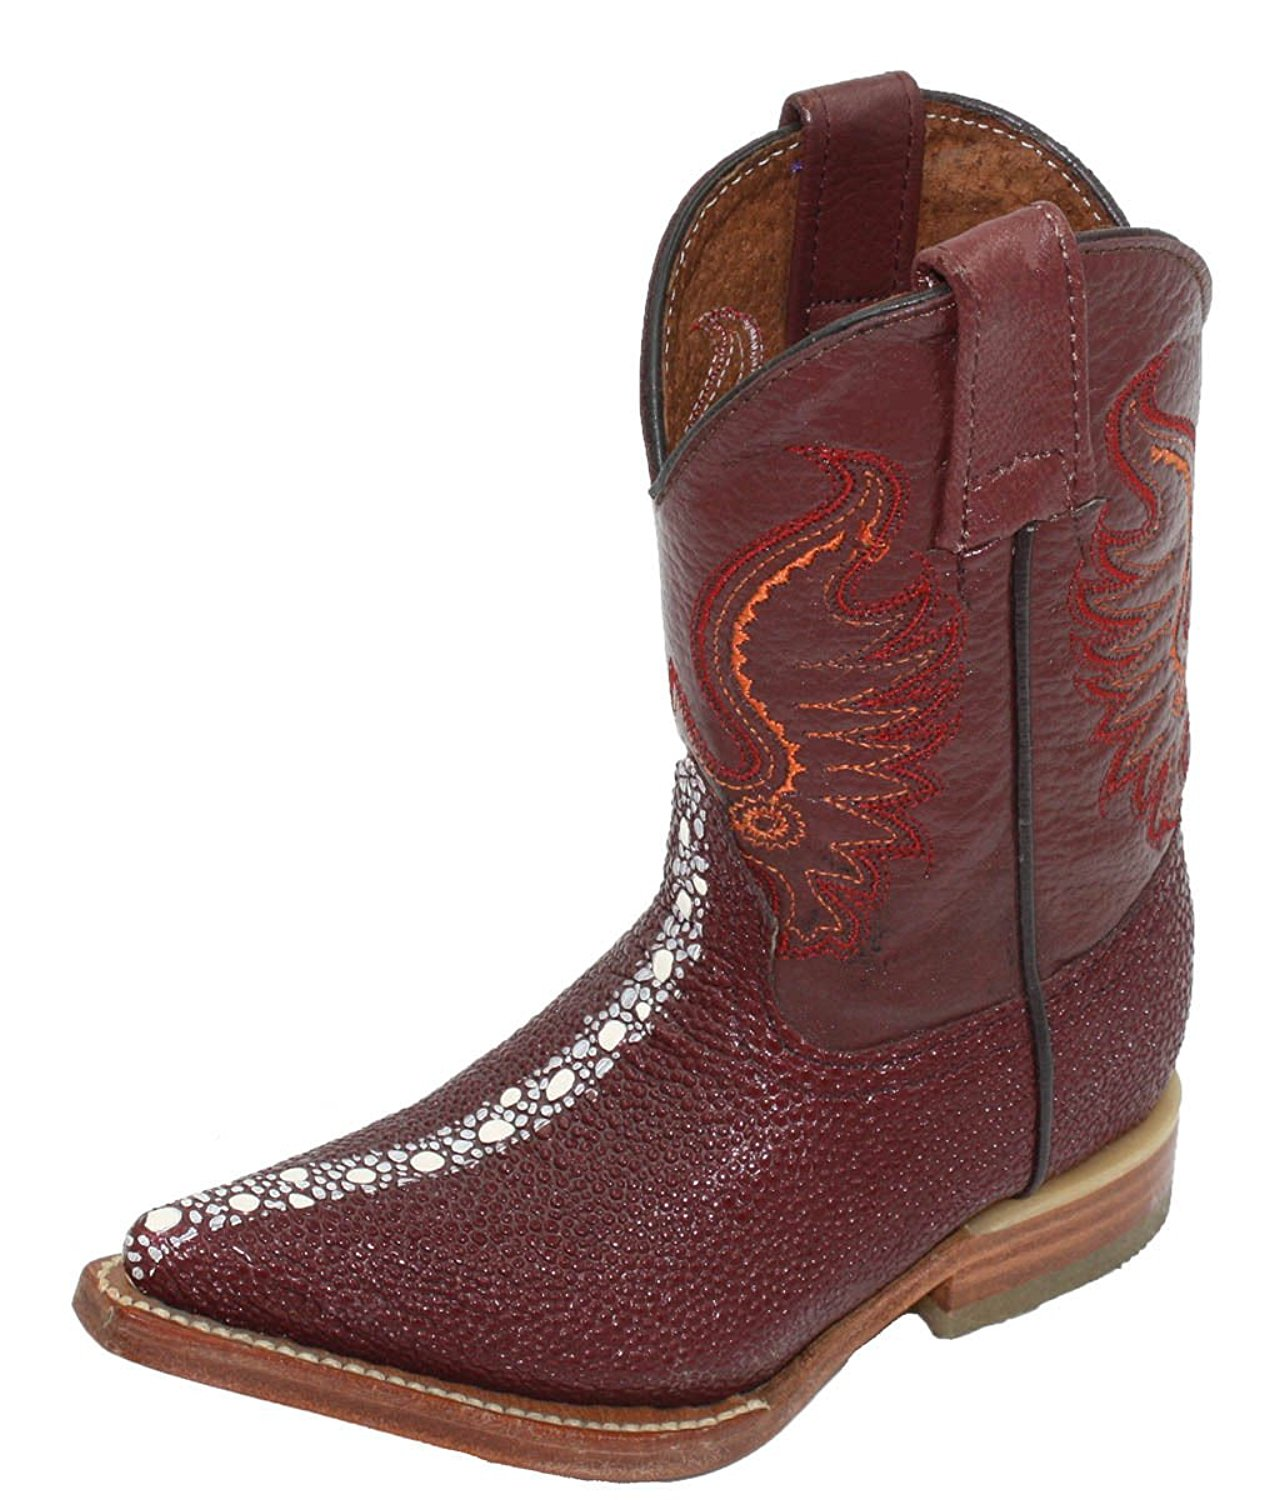 Dona Michi Kids Unisex Genuine Leather Stingray Design(Embossed) Cowboy Western Durable Boots